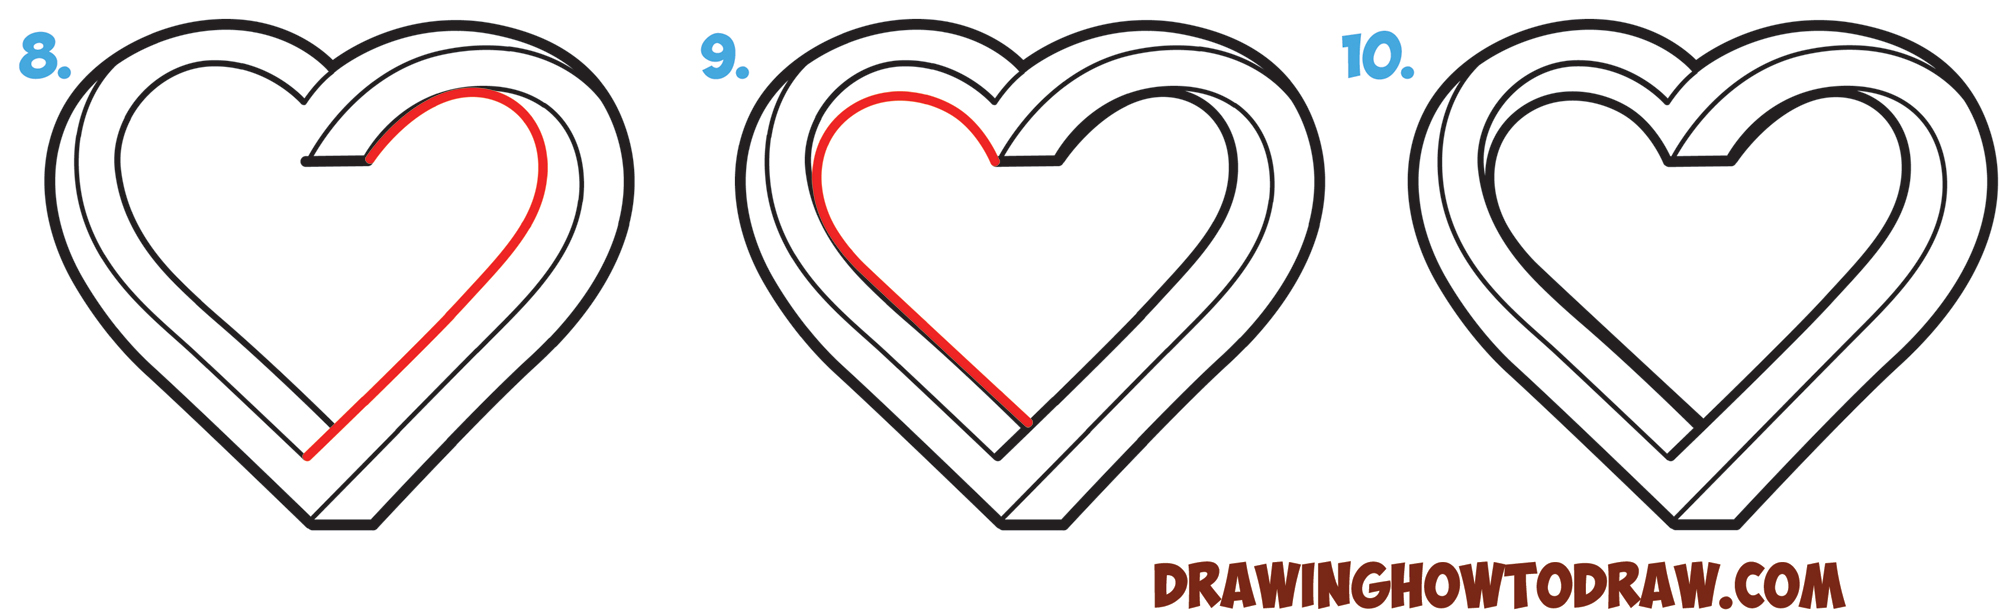 How to Draw Impossible Hearts - Simple Steps Drawing Lesson for Kids and for Beginners